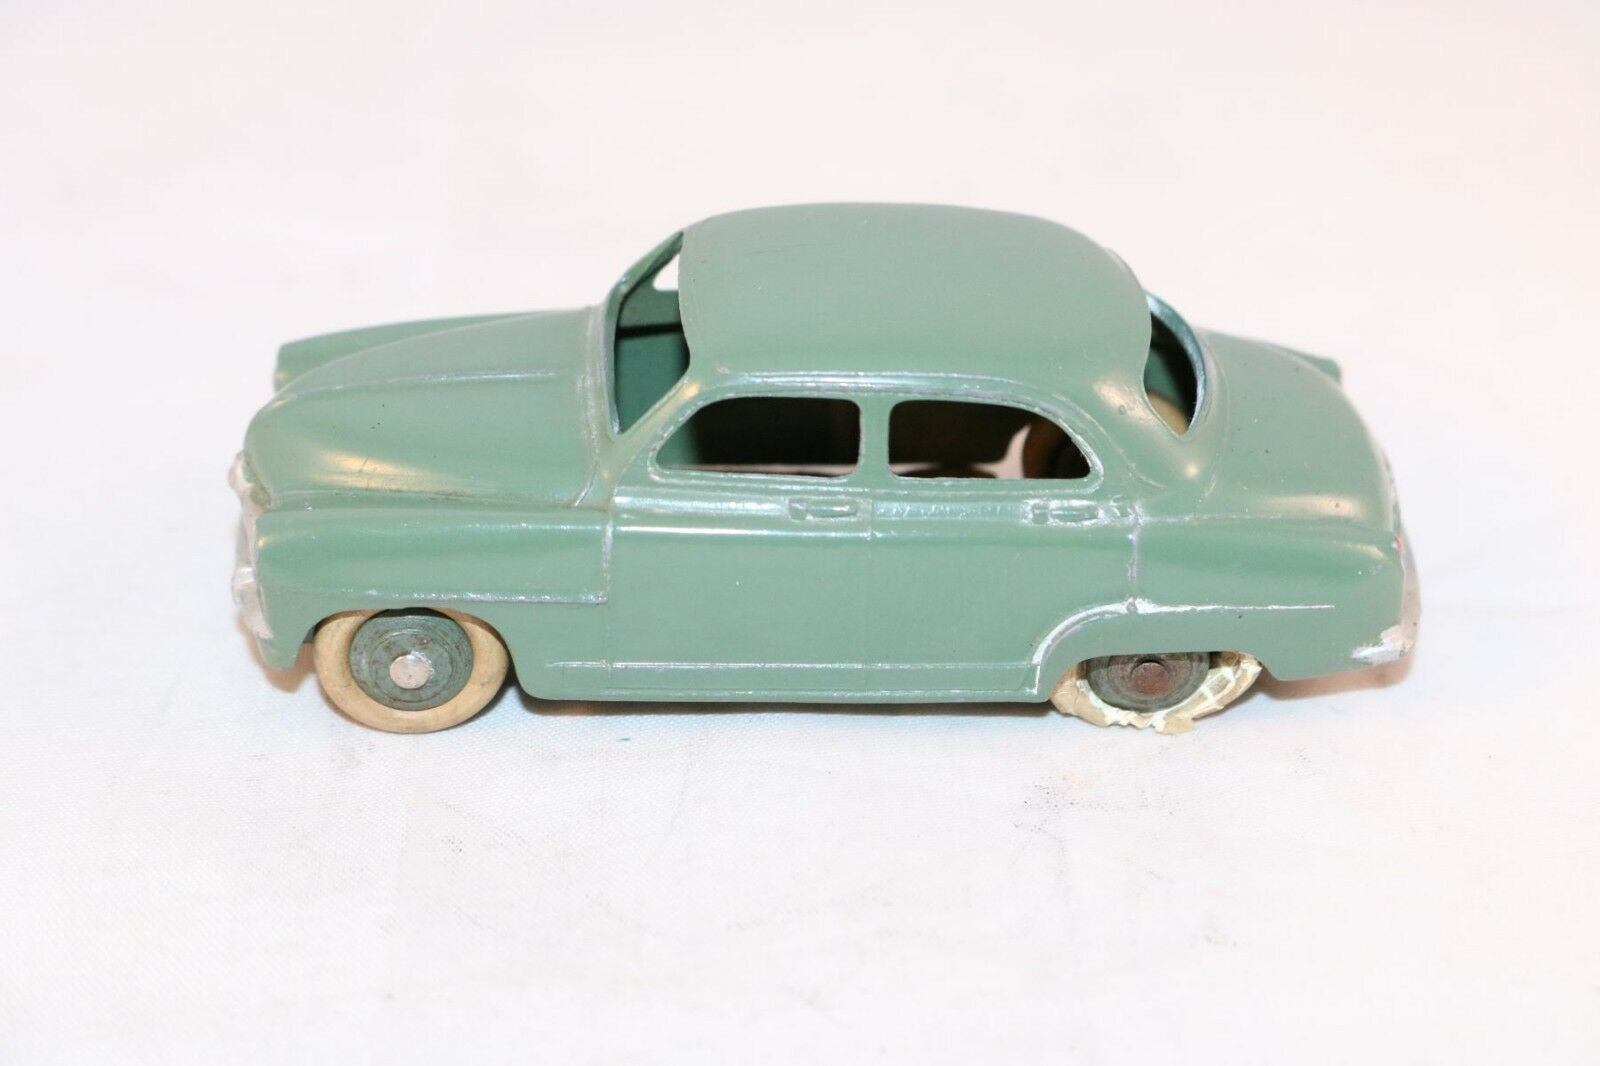 Dinky Toys 24U 24 U U U Simca Aronde French model in near mint condition b50f26